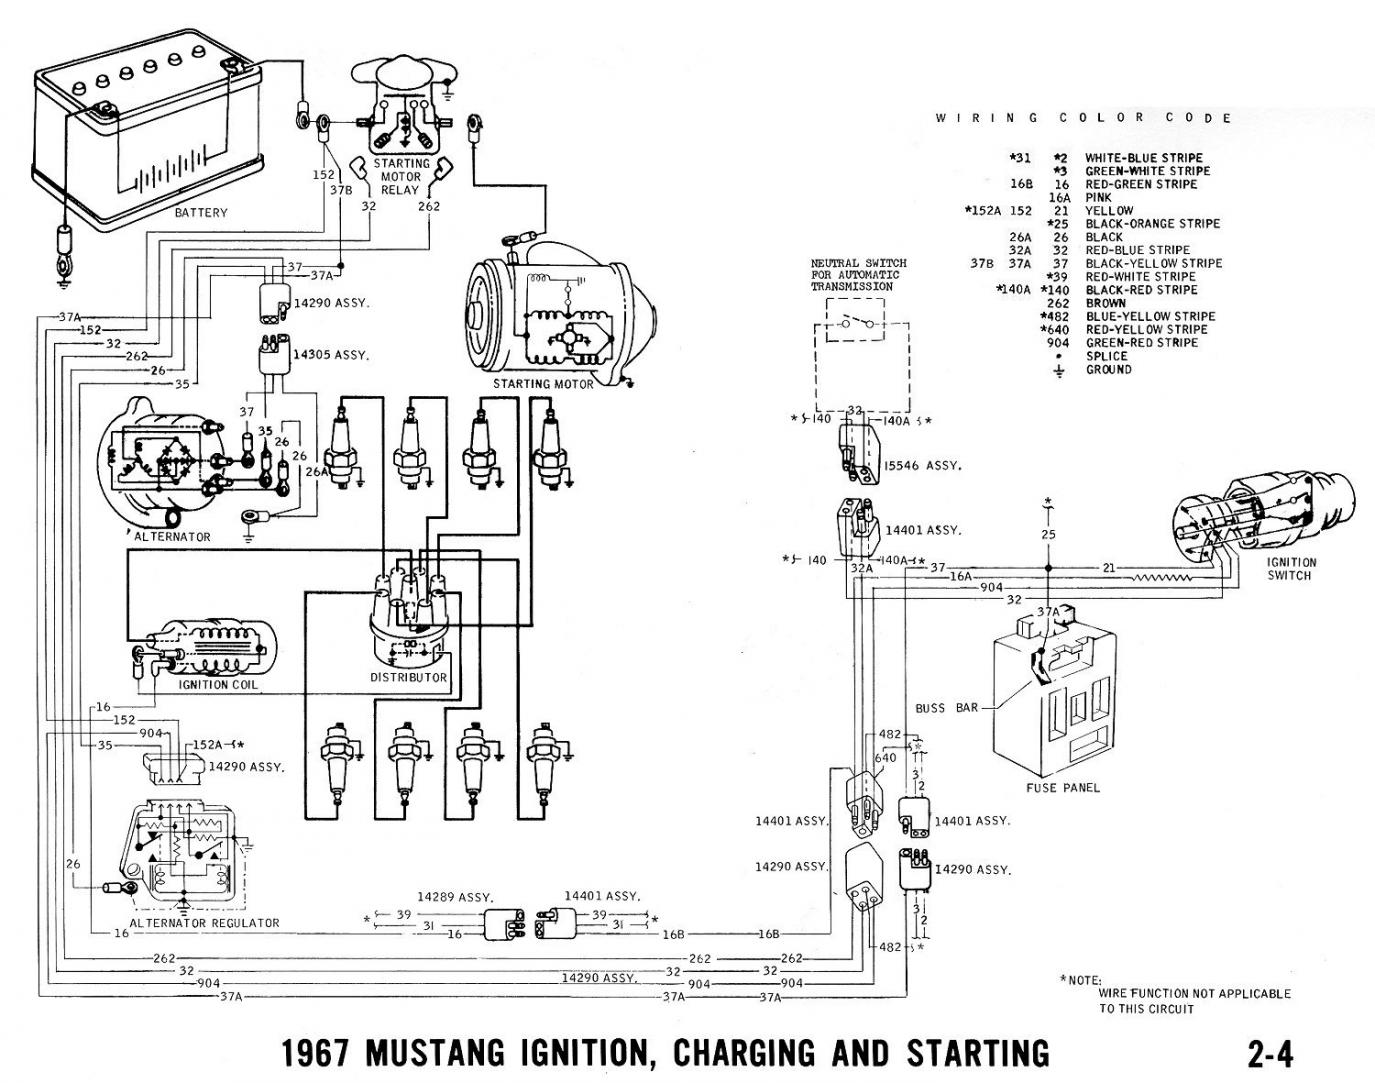 1983 mustang engine diagram